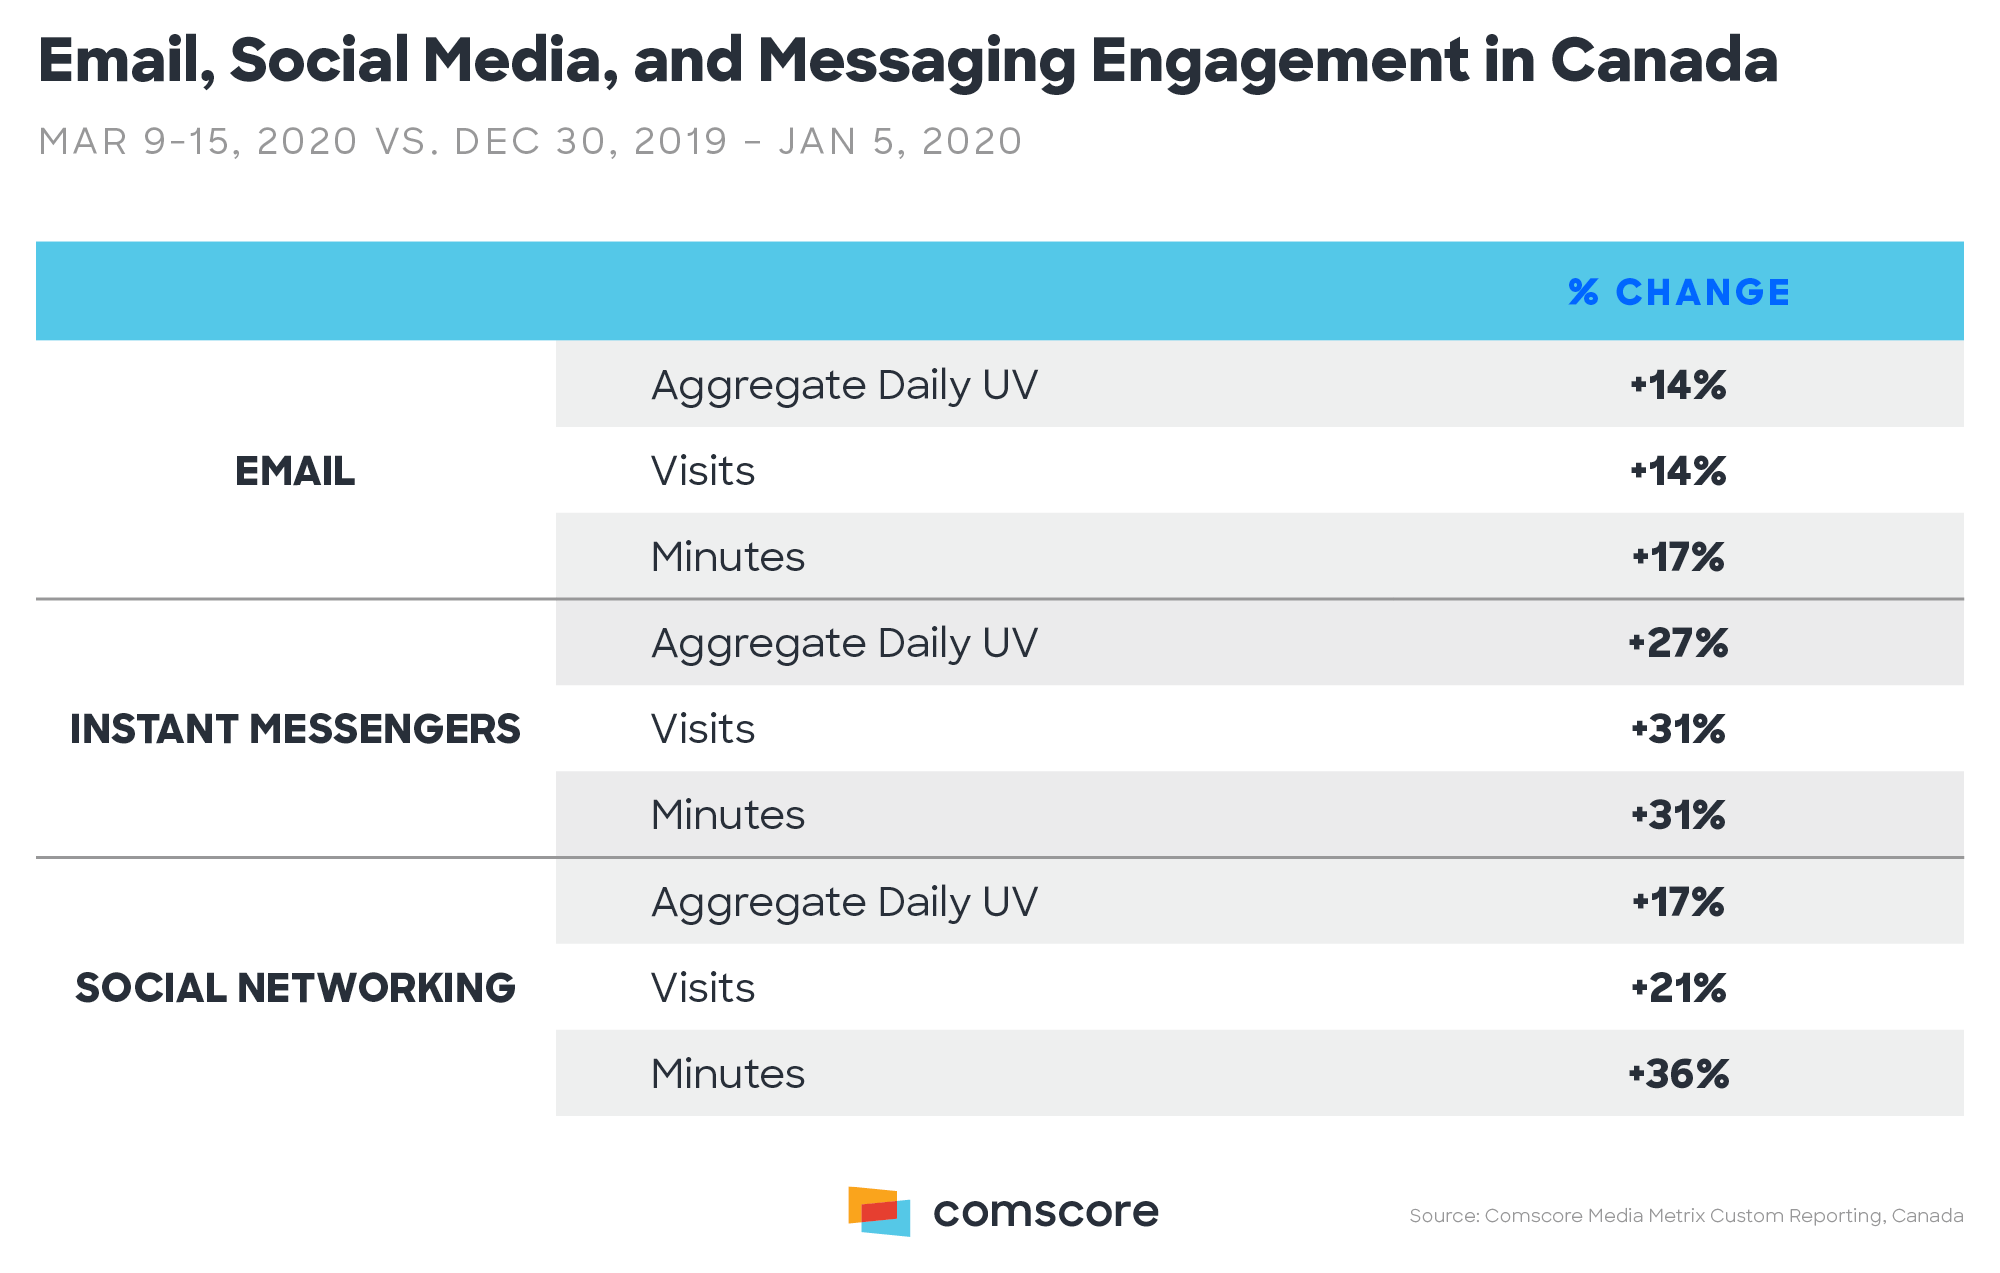 Email, Social Media, and Messaging Engagement in Canada